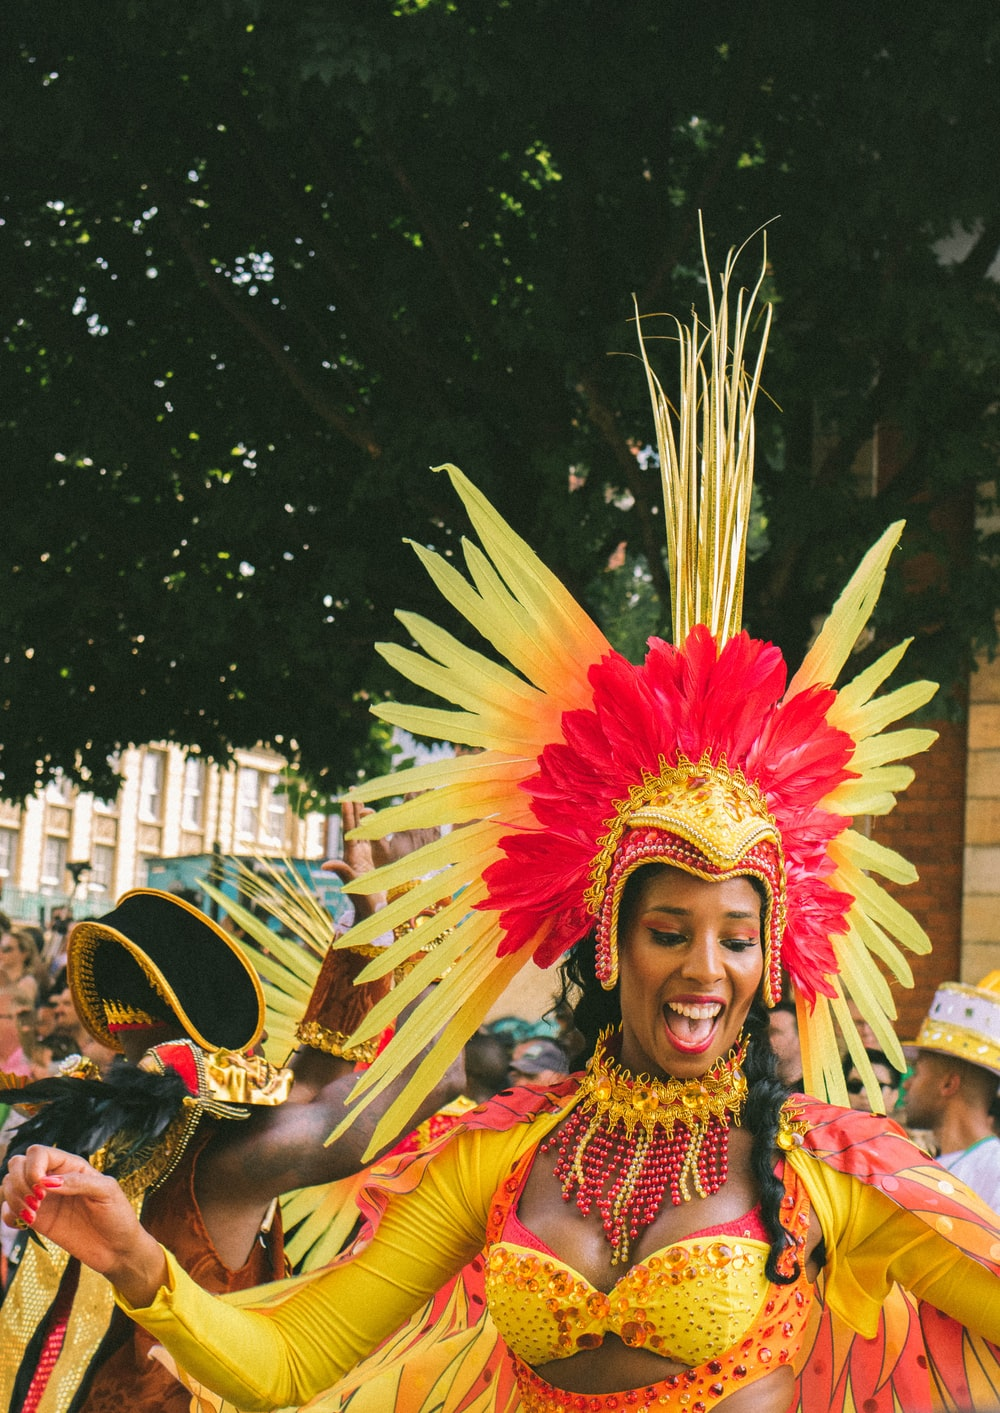 woman wearing yellow and red costume dancing in the middle of event